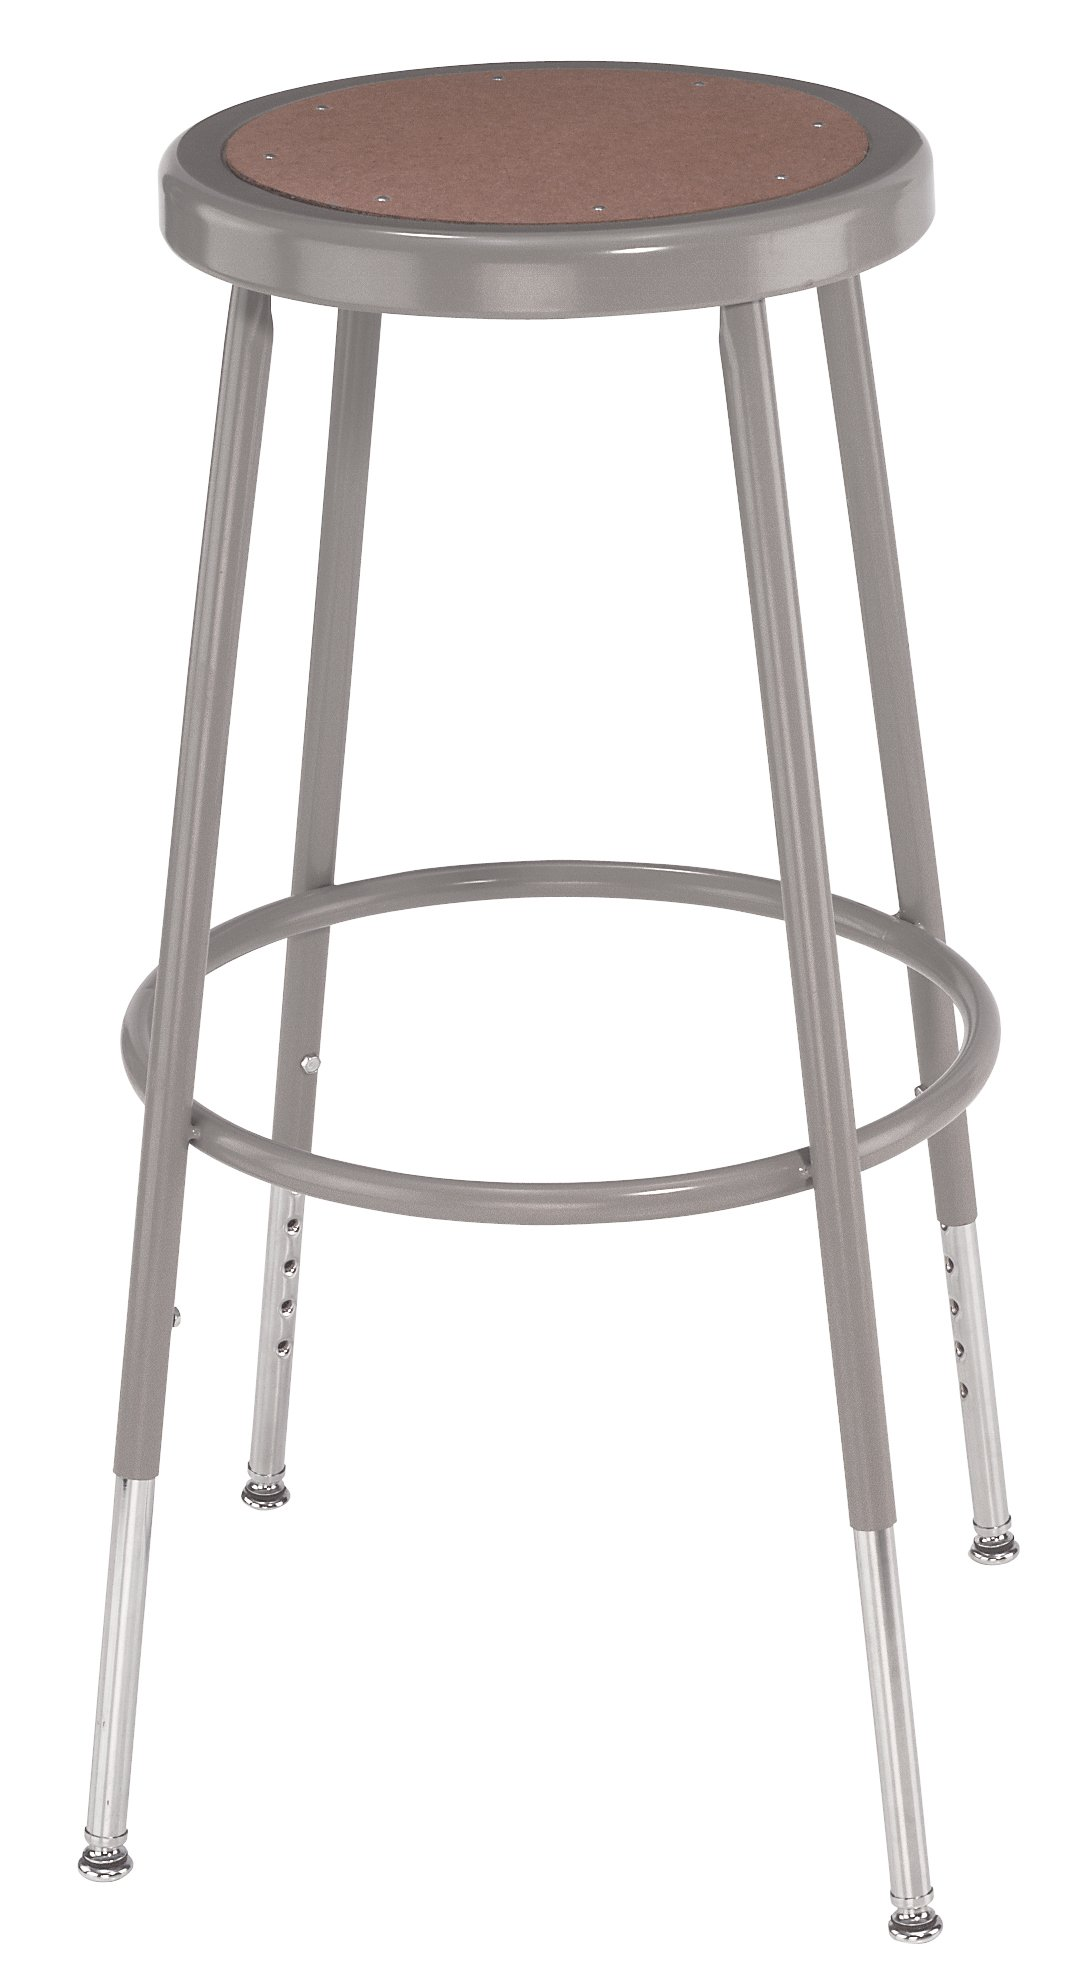 National Public Seating 6224H Steel Stool with Hardboard Seat Adjustable, 25''-33'', Grey